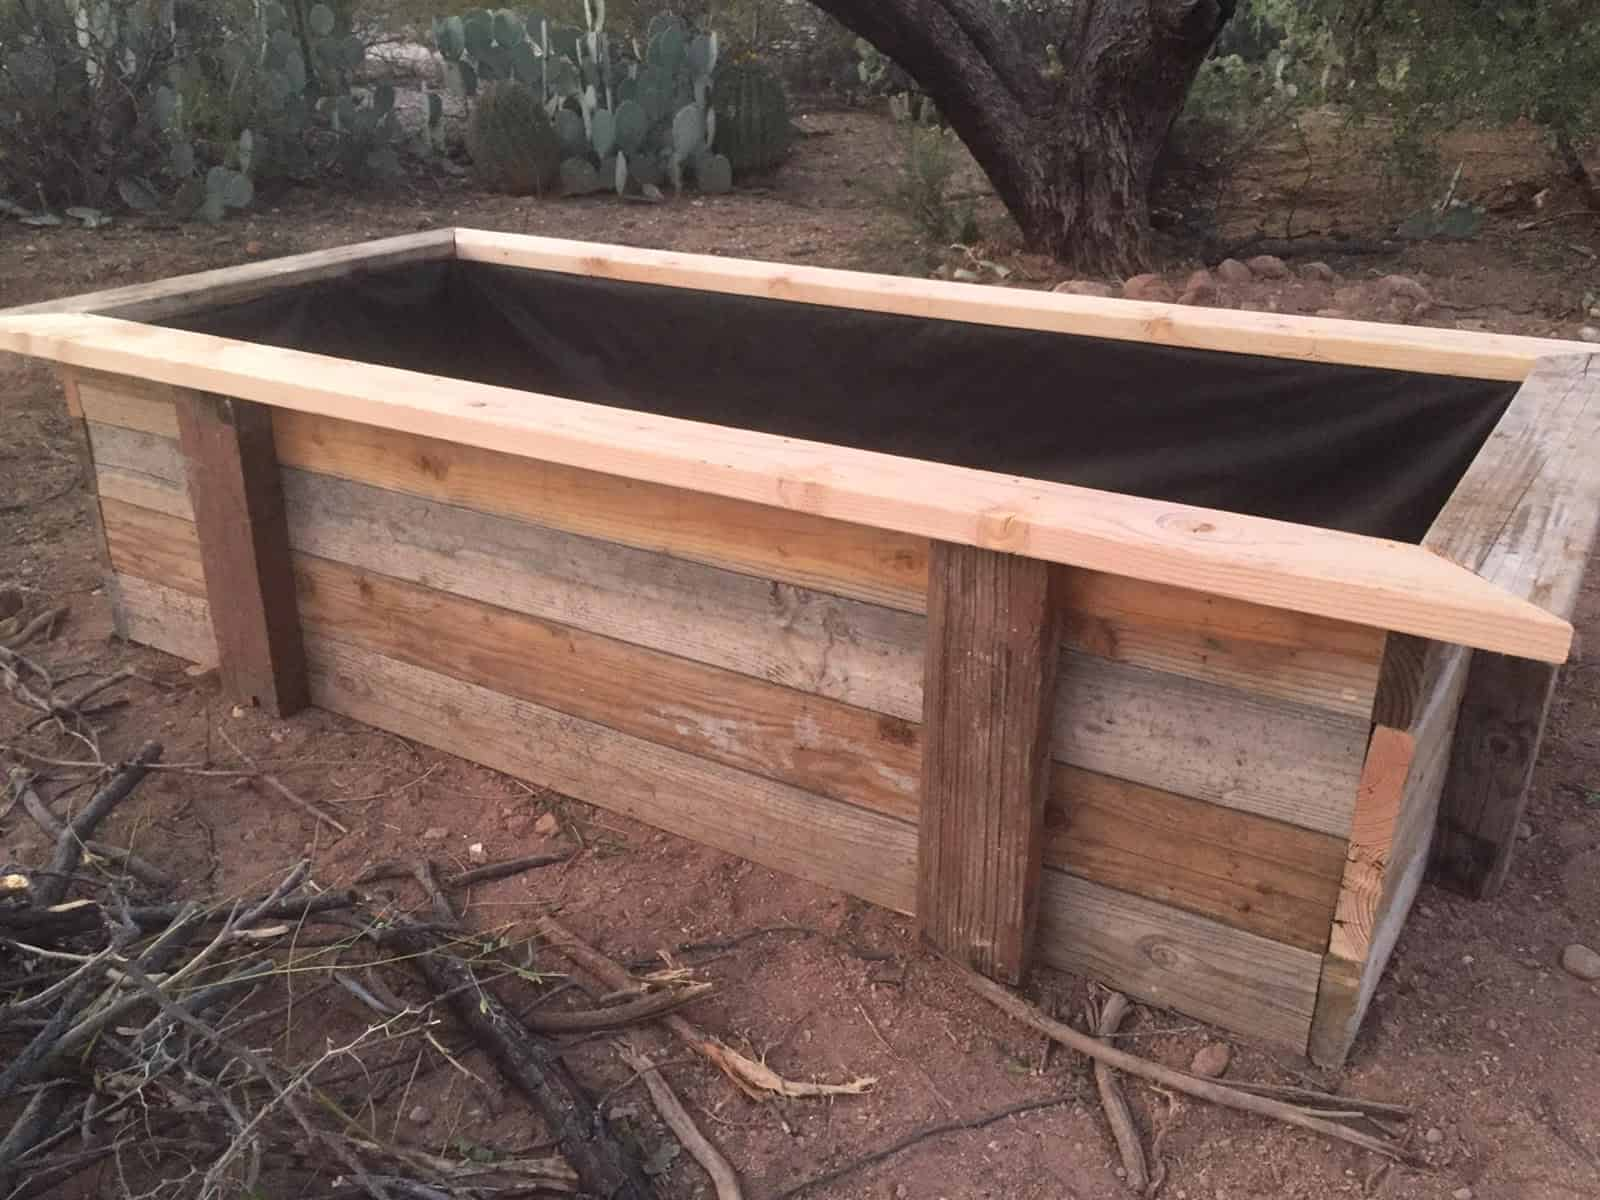 Building A Raised Garden Bed Cheaply All You Need To Know